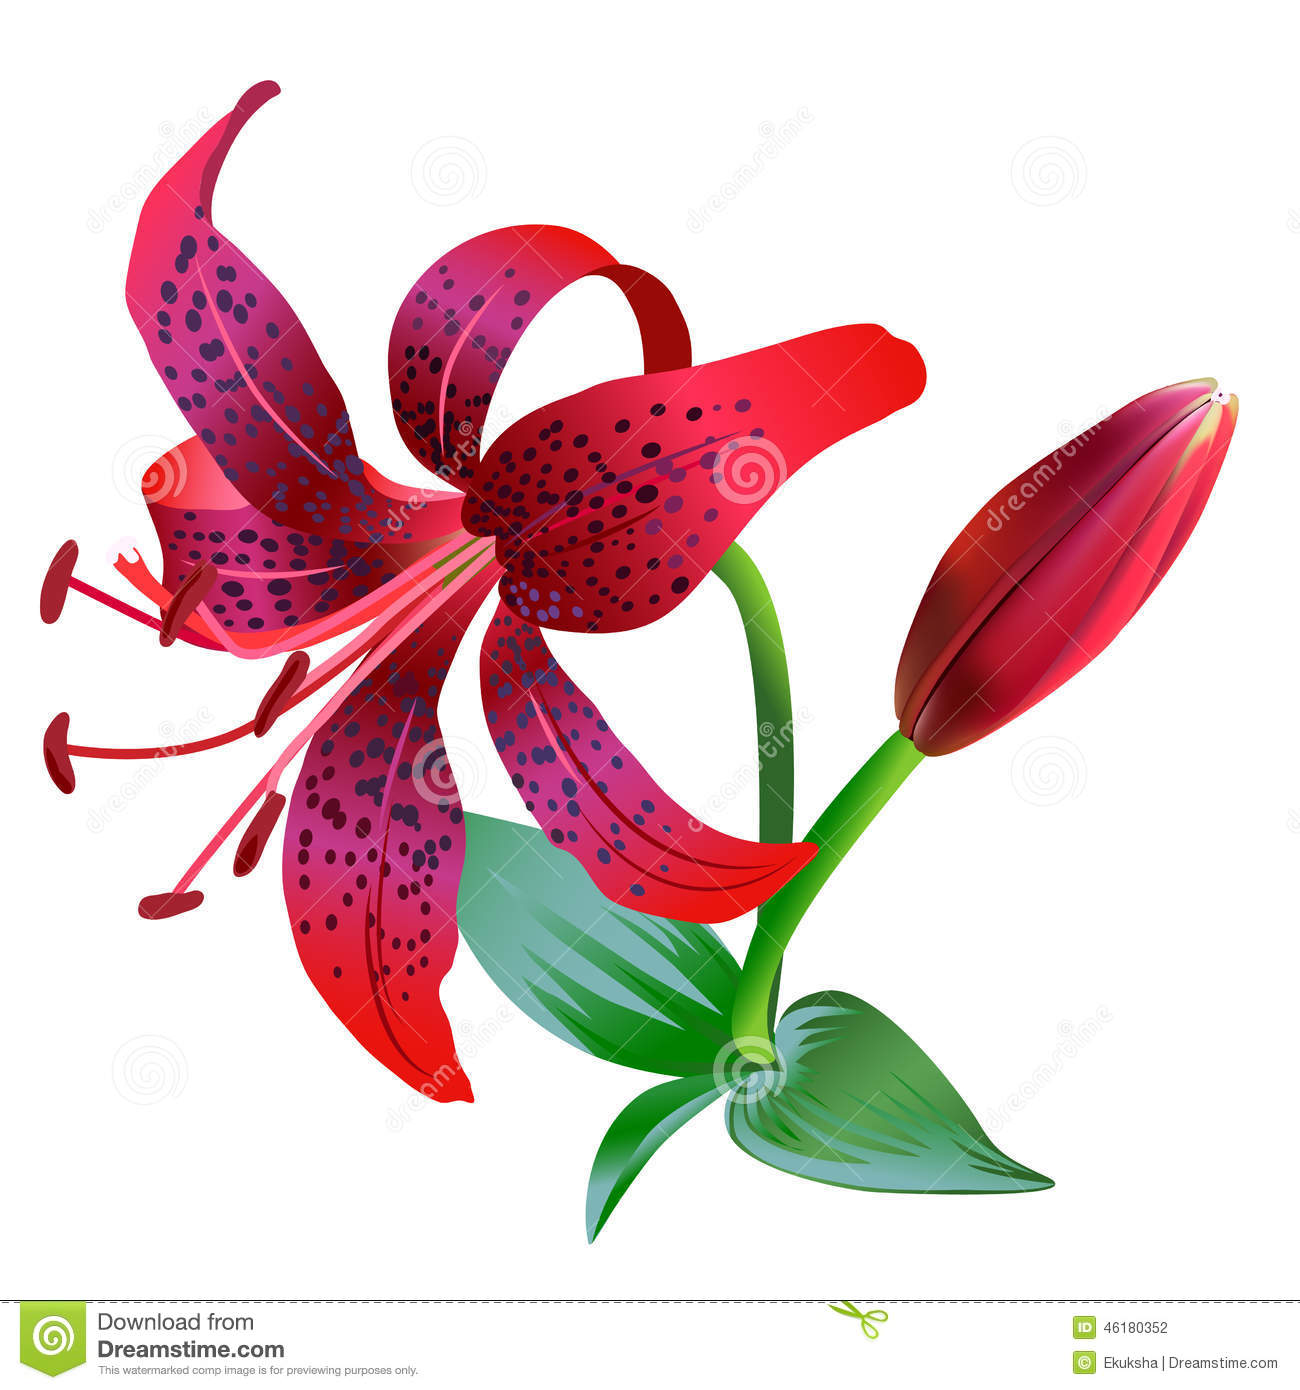 Realistic illustration of red tiger lily isolated on white realistic illustration of red tiger lily isolated on white background izmirmasajfo Images